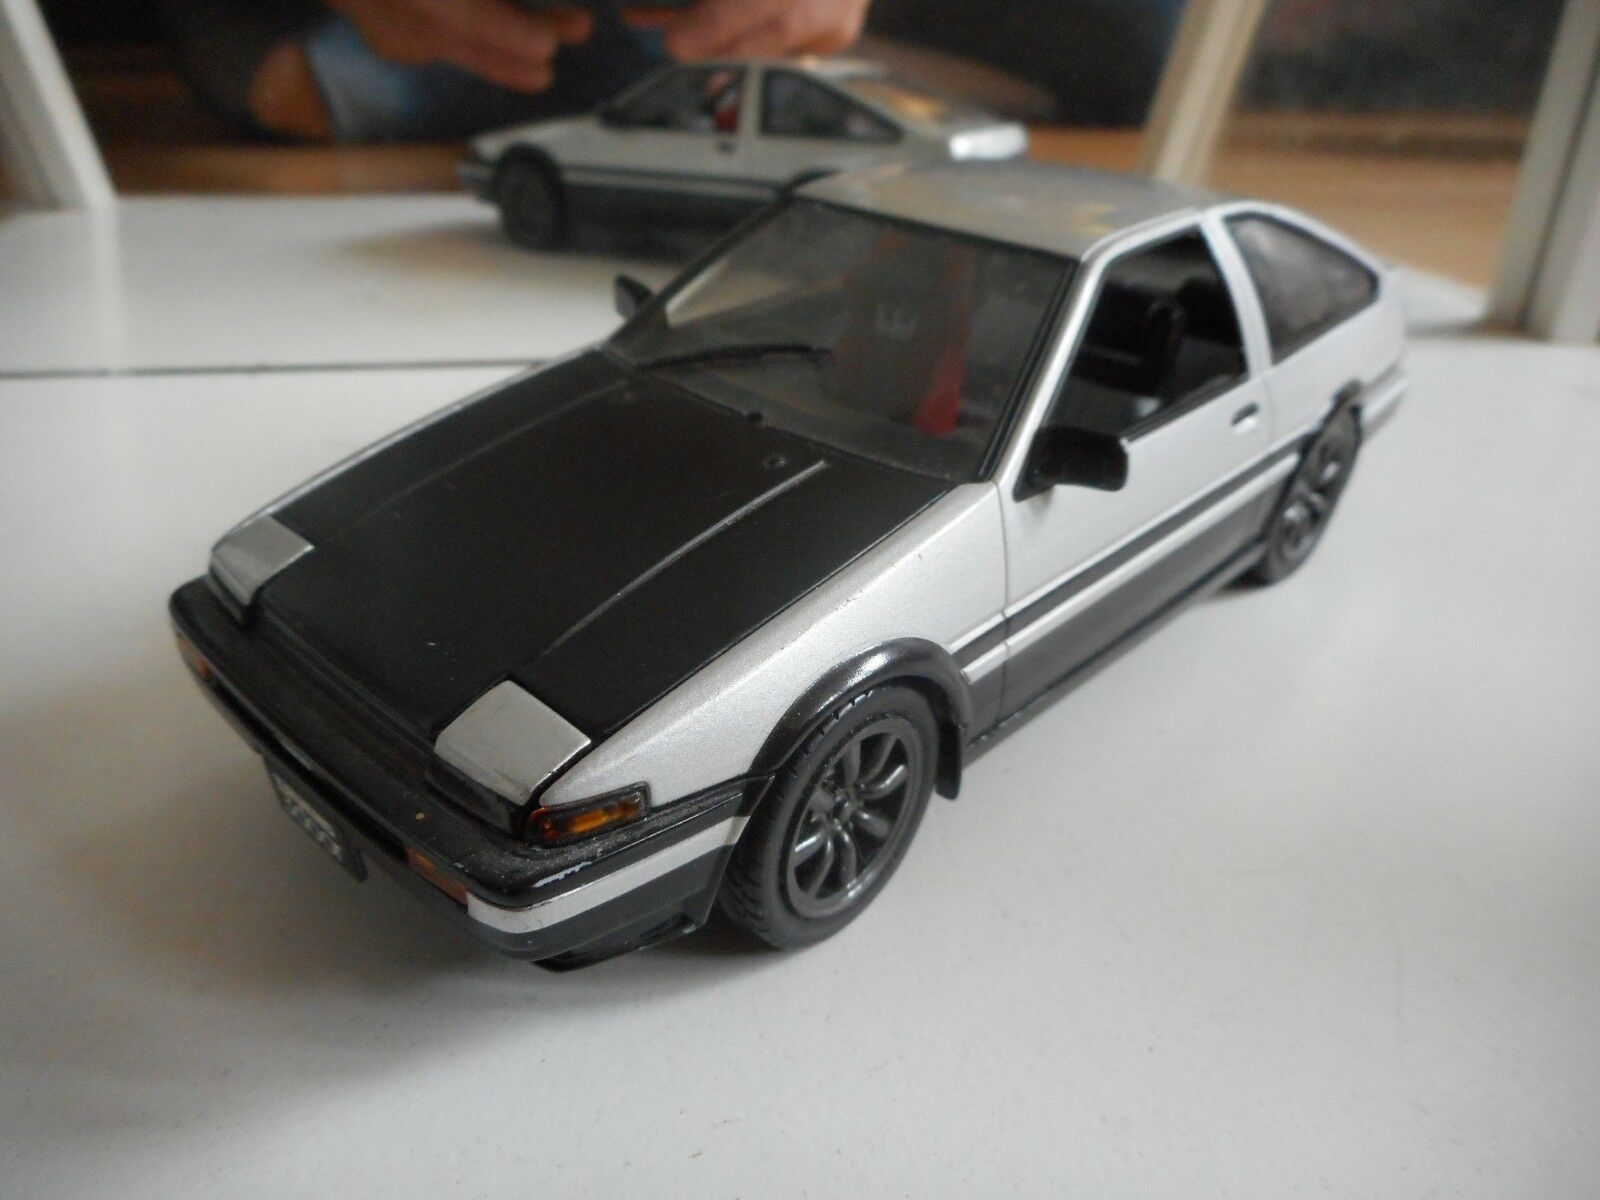 Hotworks Toyota Trueno (AE86 2018) in Gris on 1:24